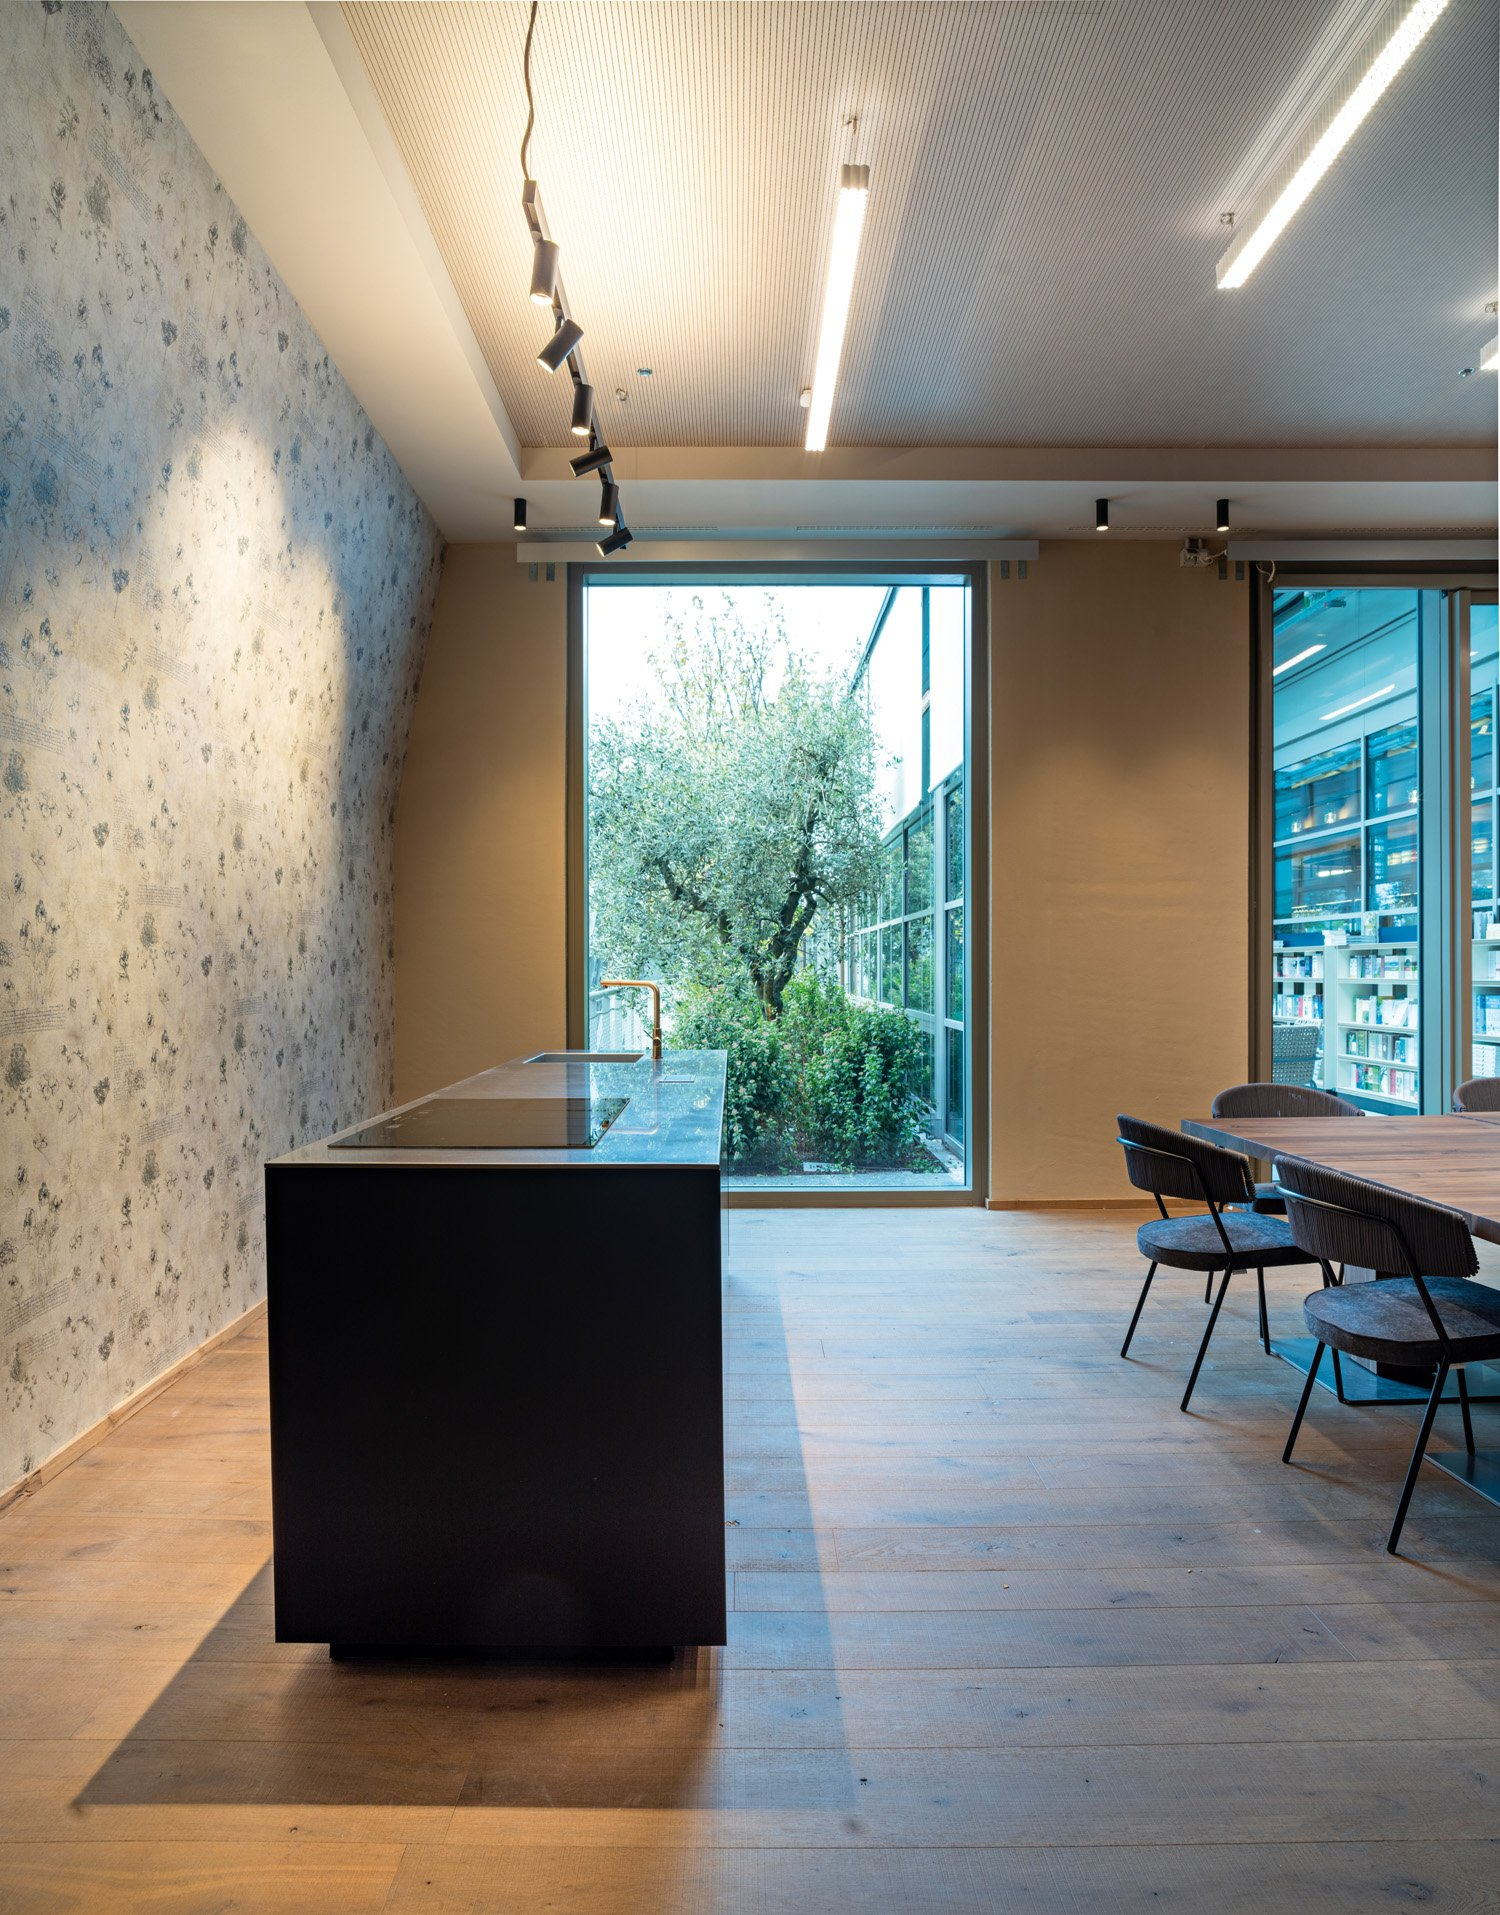 © Fabio Oggero courtesy ACC Naturale Architettura e Negozio Blu Architetti Associati Man-made lighting creates a dialogue with natural light as an integral part of the architectural approach, flooding the interior spaces through large windows that also offer outside views.